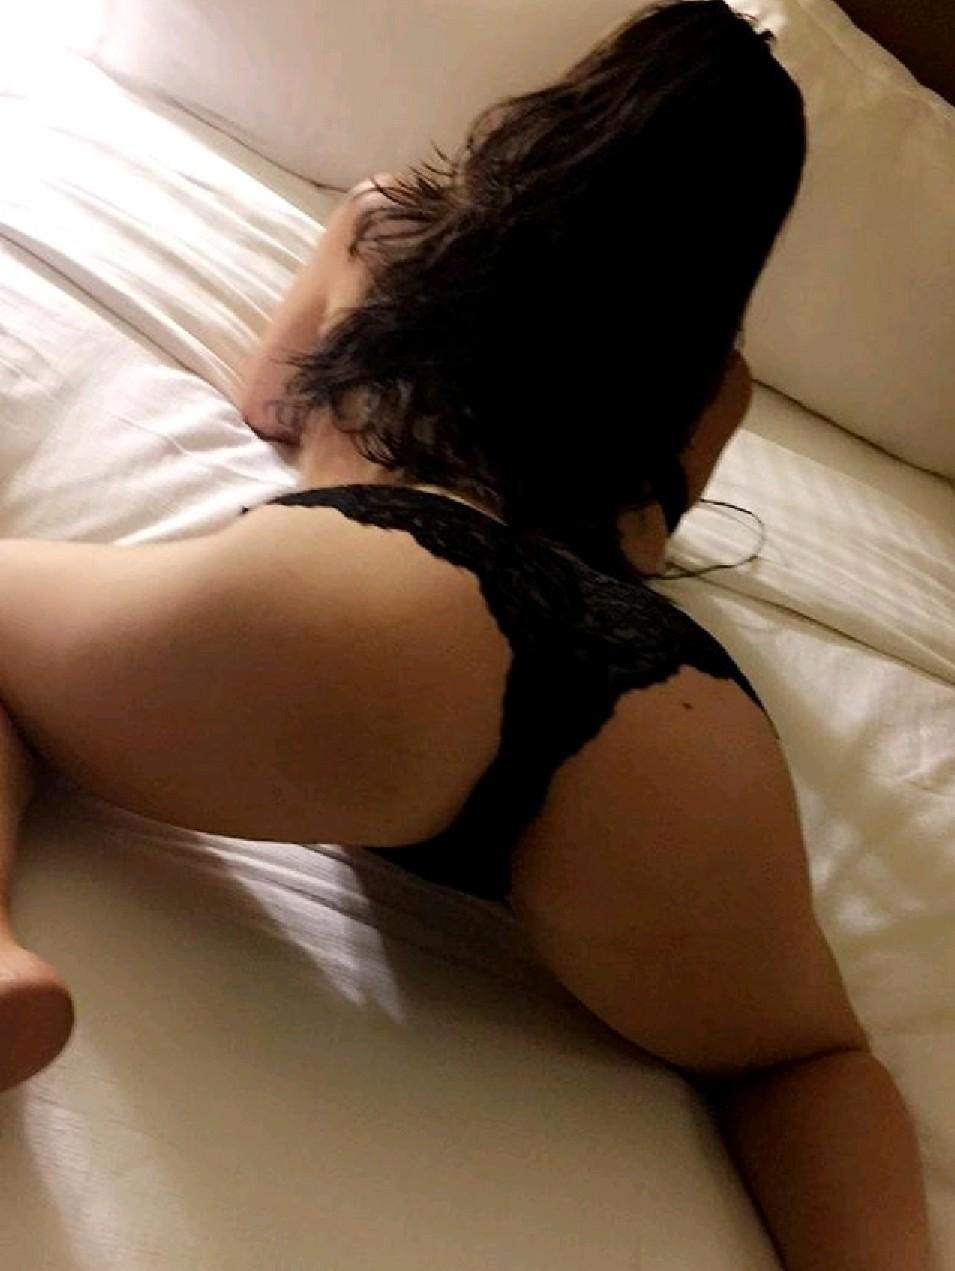 Curvy busty exotic GFE escort Chicago